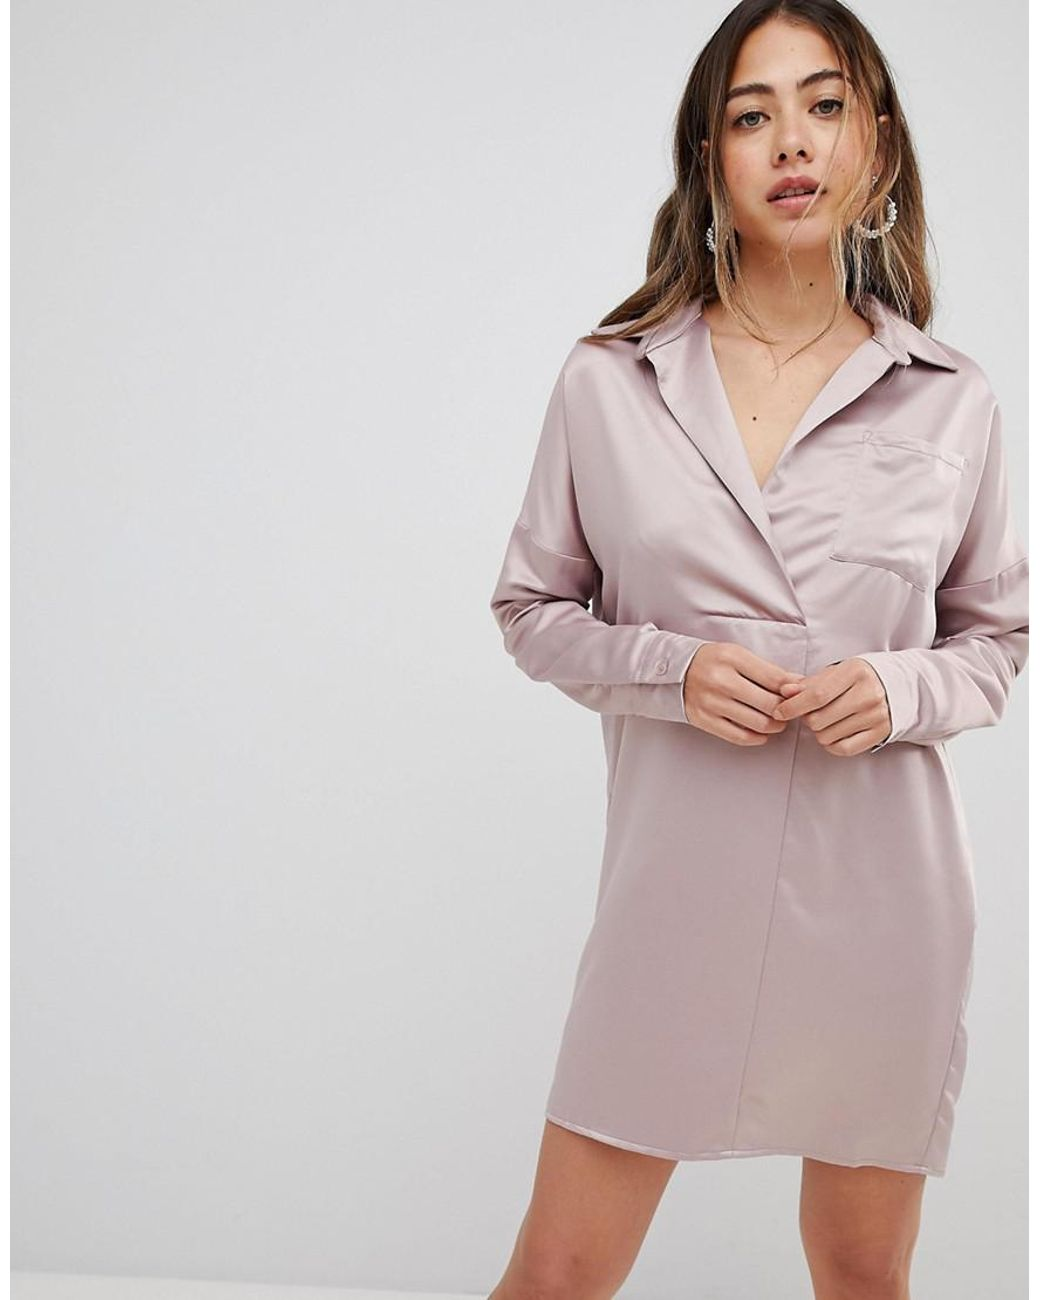 2a5672537900dc Missguided Satin Shirt Dress in Pink - Lyst